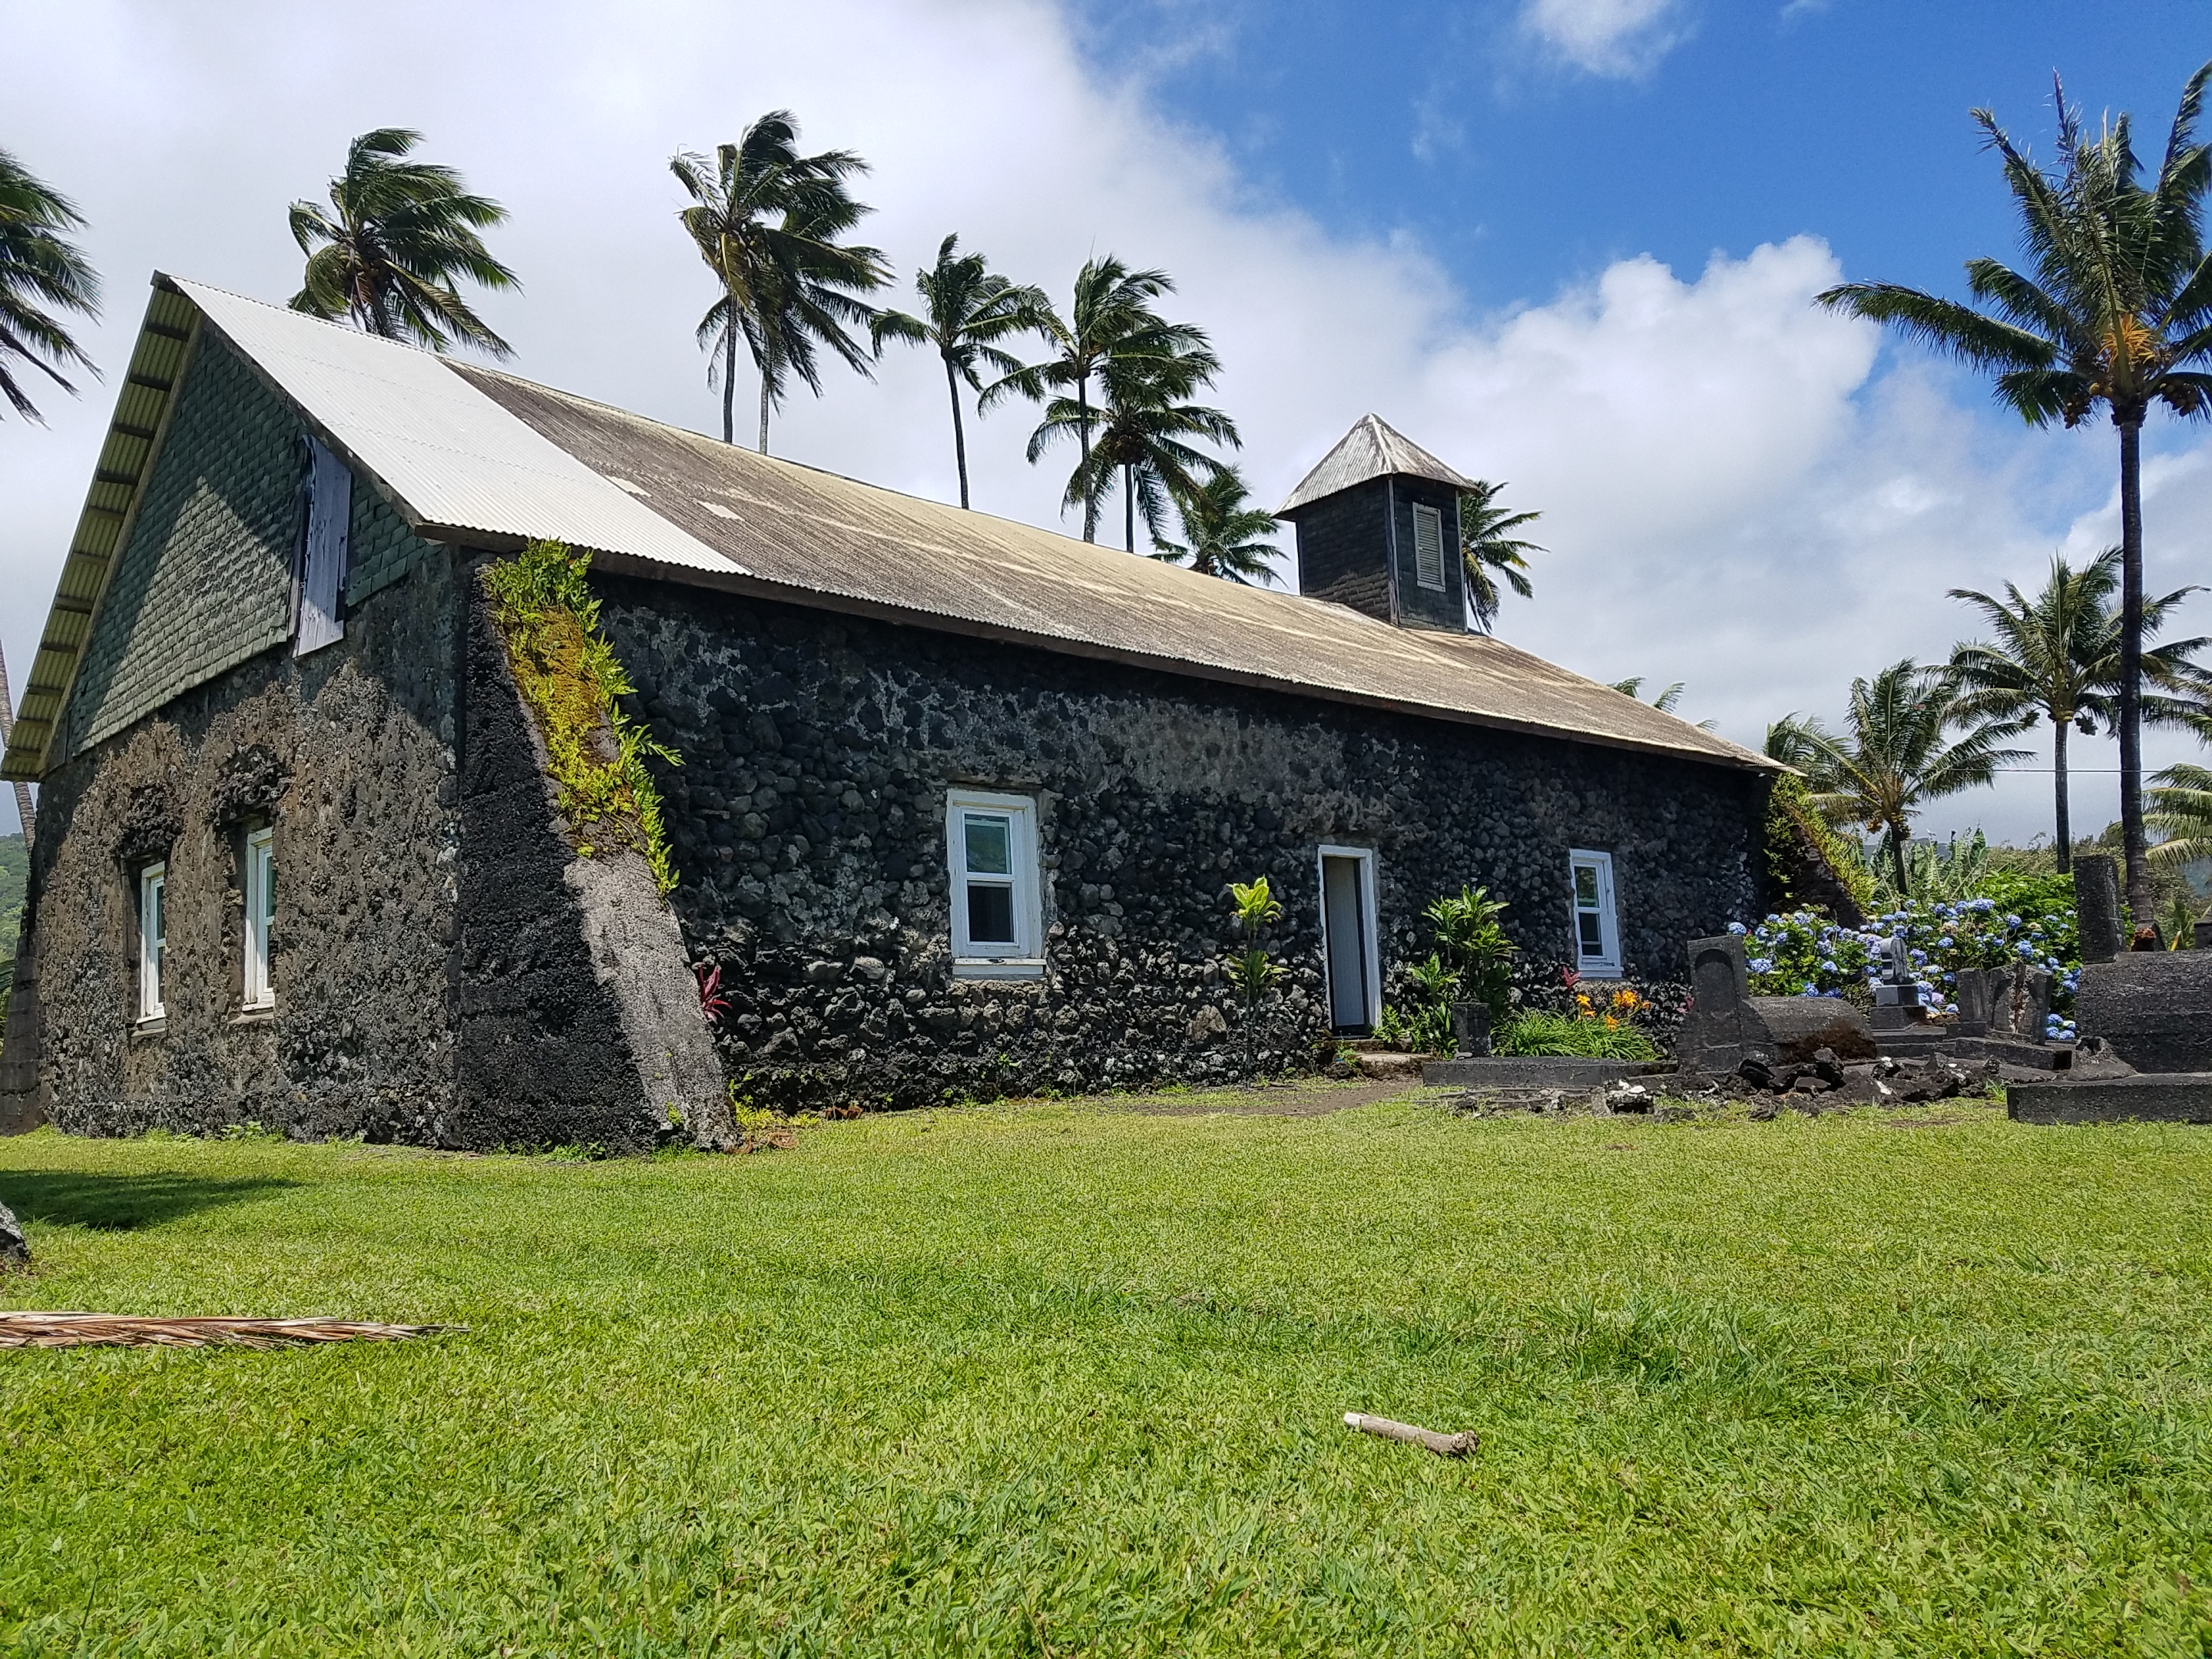 Lanakila Ihiihi O Iehowa Ona Kava Church also known as the Keanae Congregational Church. This church is located on the Keanae Peninsula on the Road to Hana.